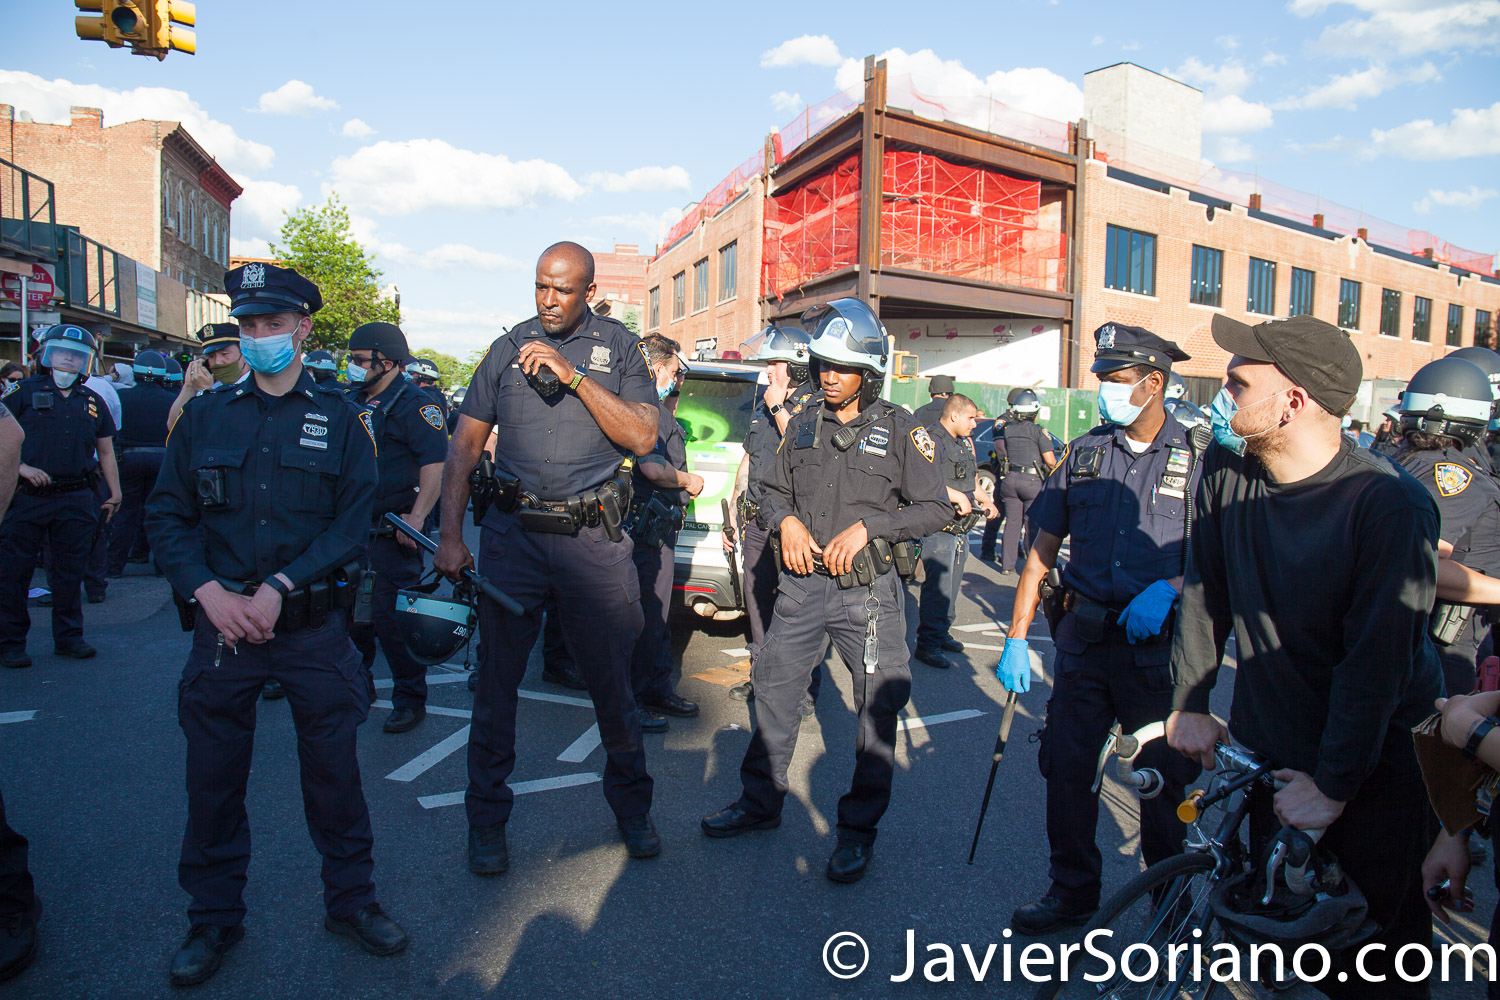 Saturday, May 30, 2020. Brooklyn, New York City - March in Flatbush to demand justice for George Floyd. Many NYPD officers were not wearing a mask. Photo by Javier Soriano/www.JavierSoriano.com